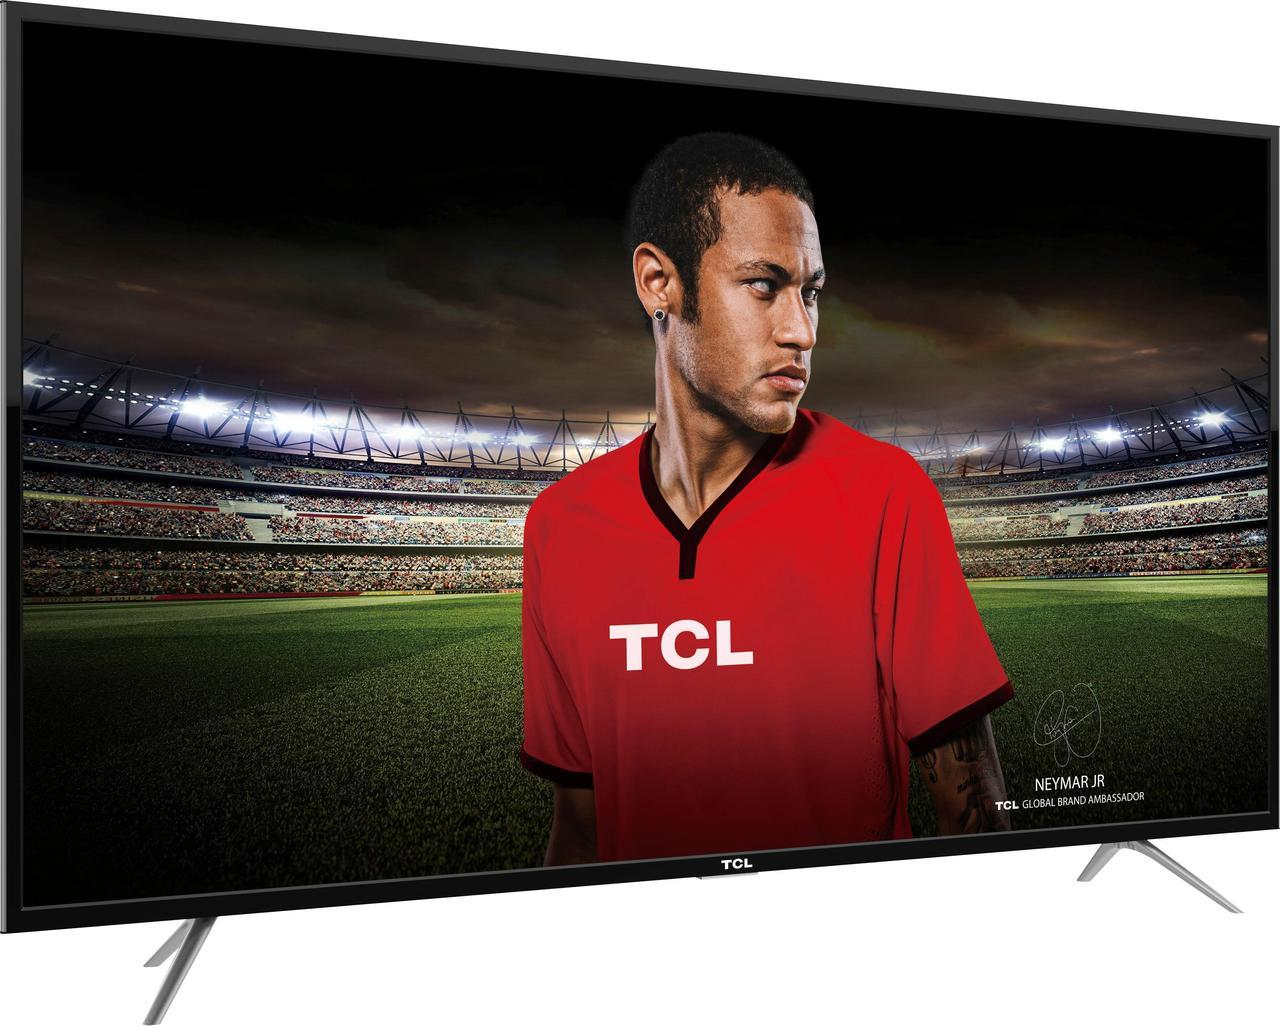 Телевизор TCL 50EP660 (4K / SmartTV / PPI 1200 / Wi-Fi / Dolby Digital Plus / Android / DVB-C/T/S/T2/S2)